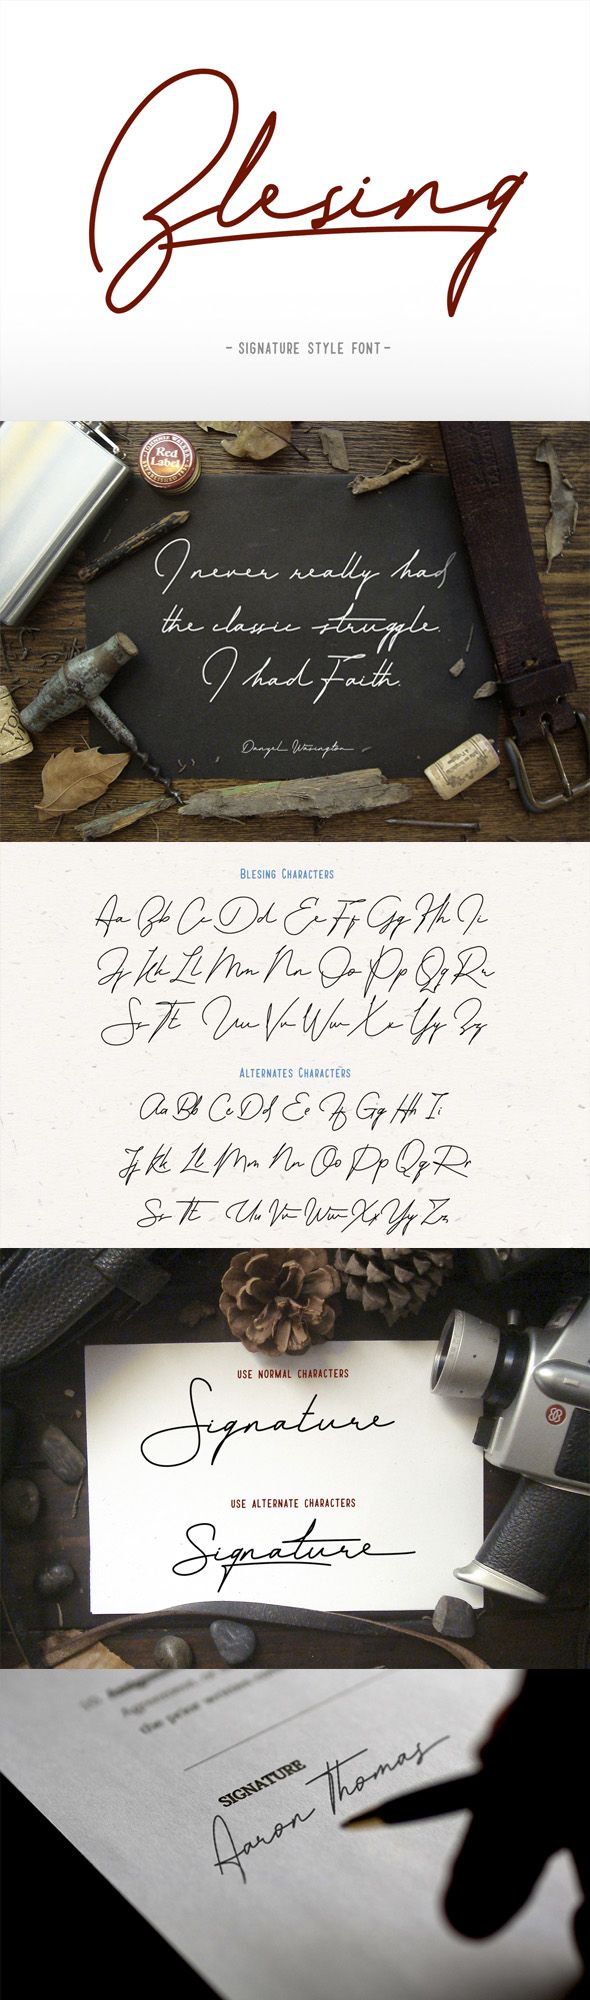 Blesing signature style - Hand-writing Script